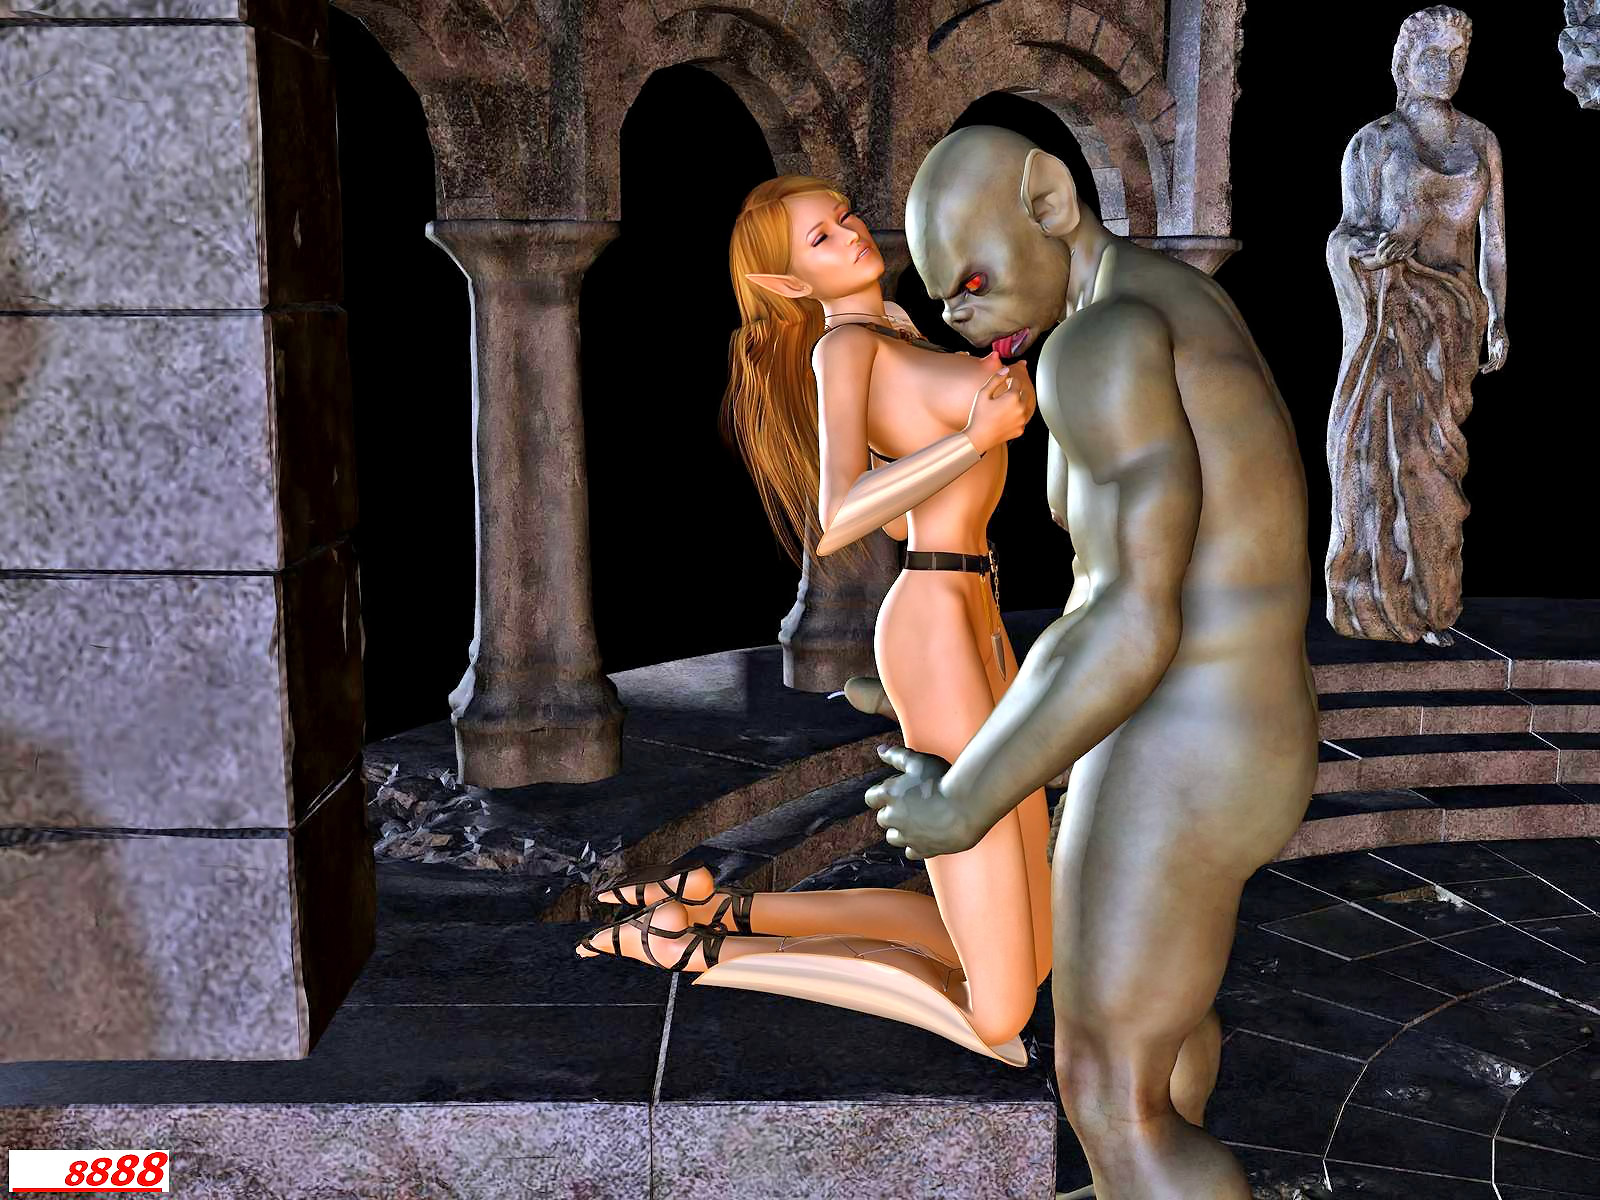 Planetsuzy pics sexual warrior elf and orc nackt film